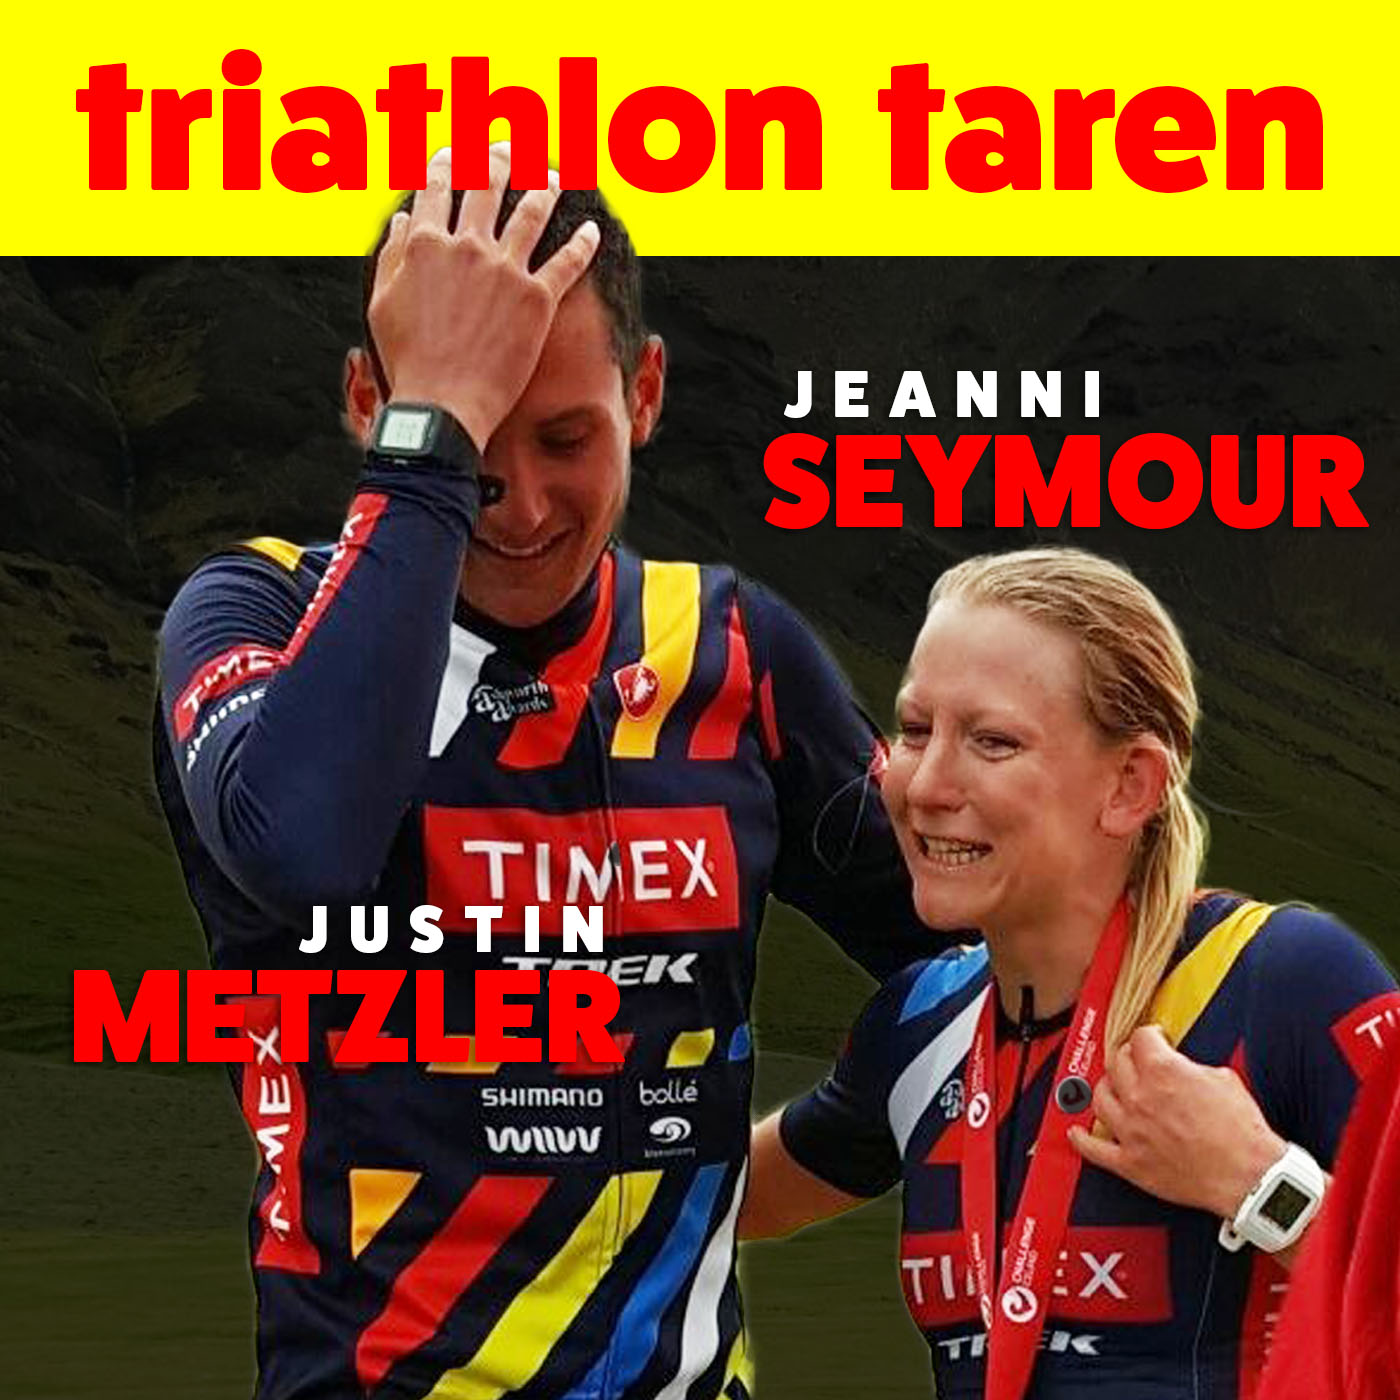 Jeanni Seymour & Justin Metzler on Biking Without a Saddle and How to Pick Up a Pro Triathlete